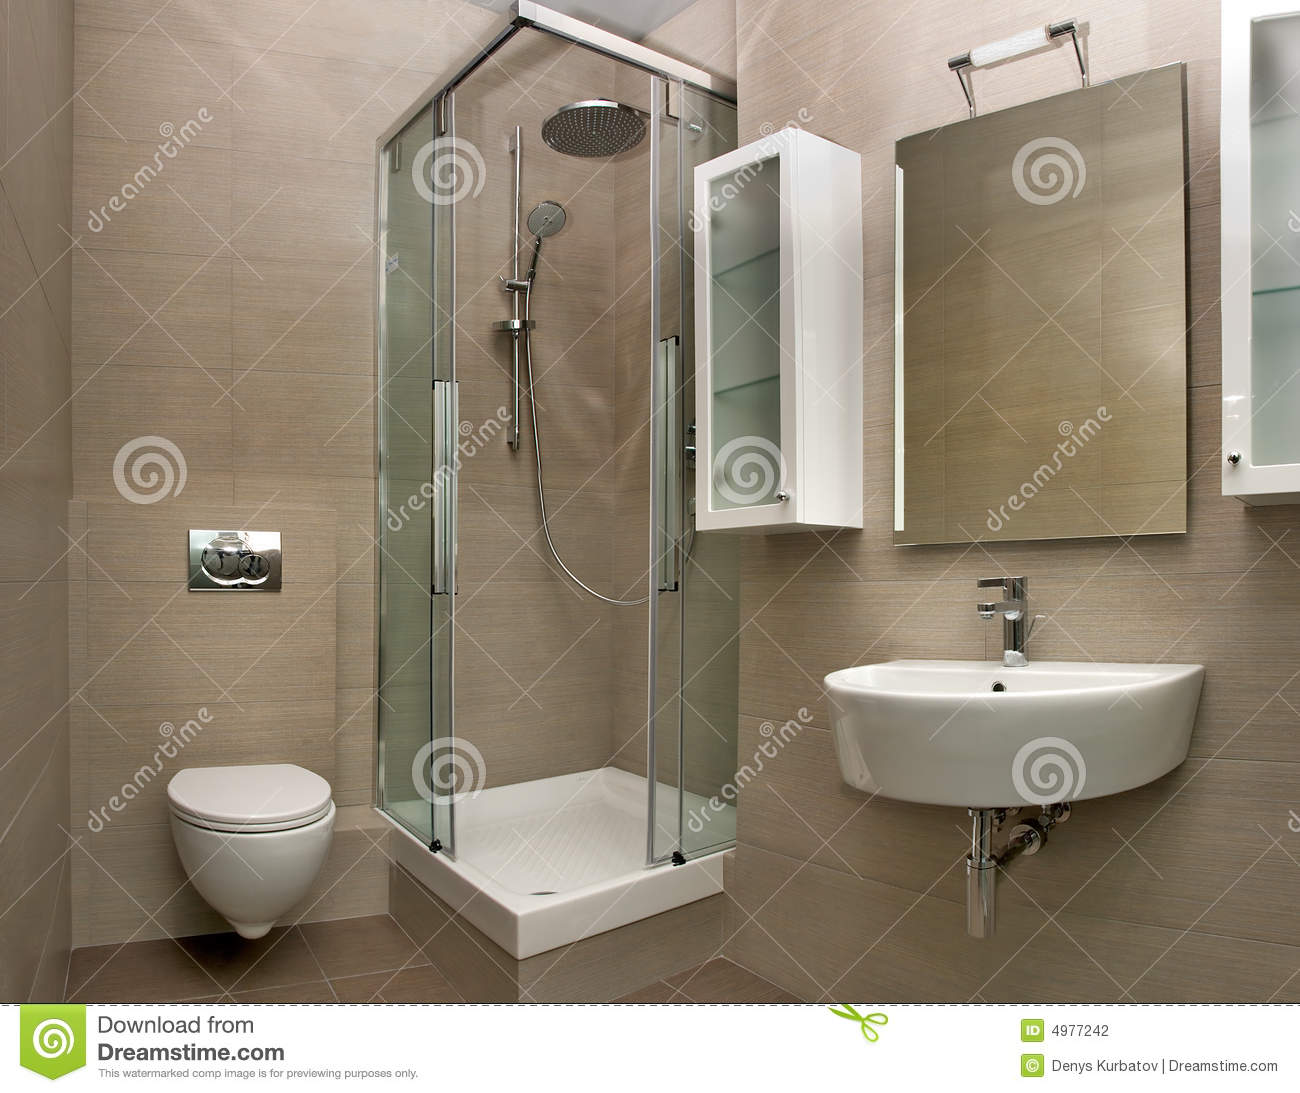 Bathroom interior stock photography image 4977242 - Interior of a bathroom ...